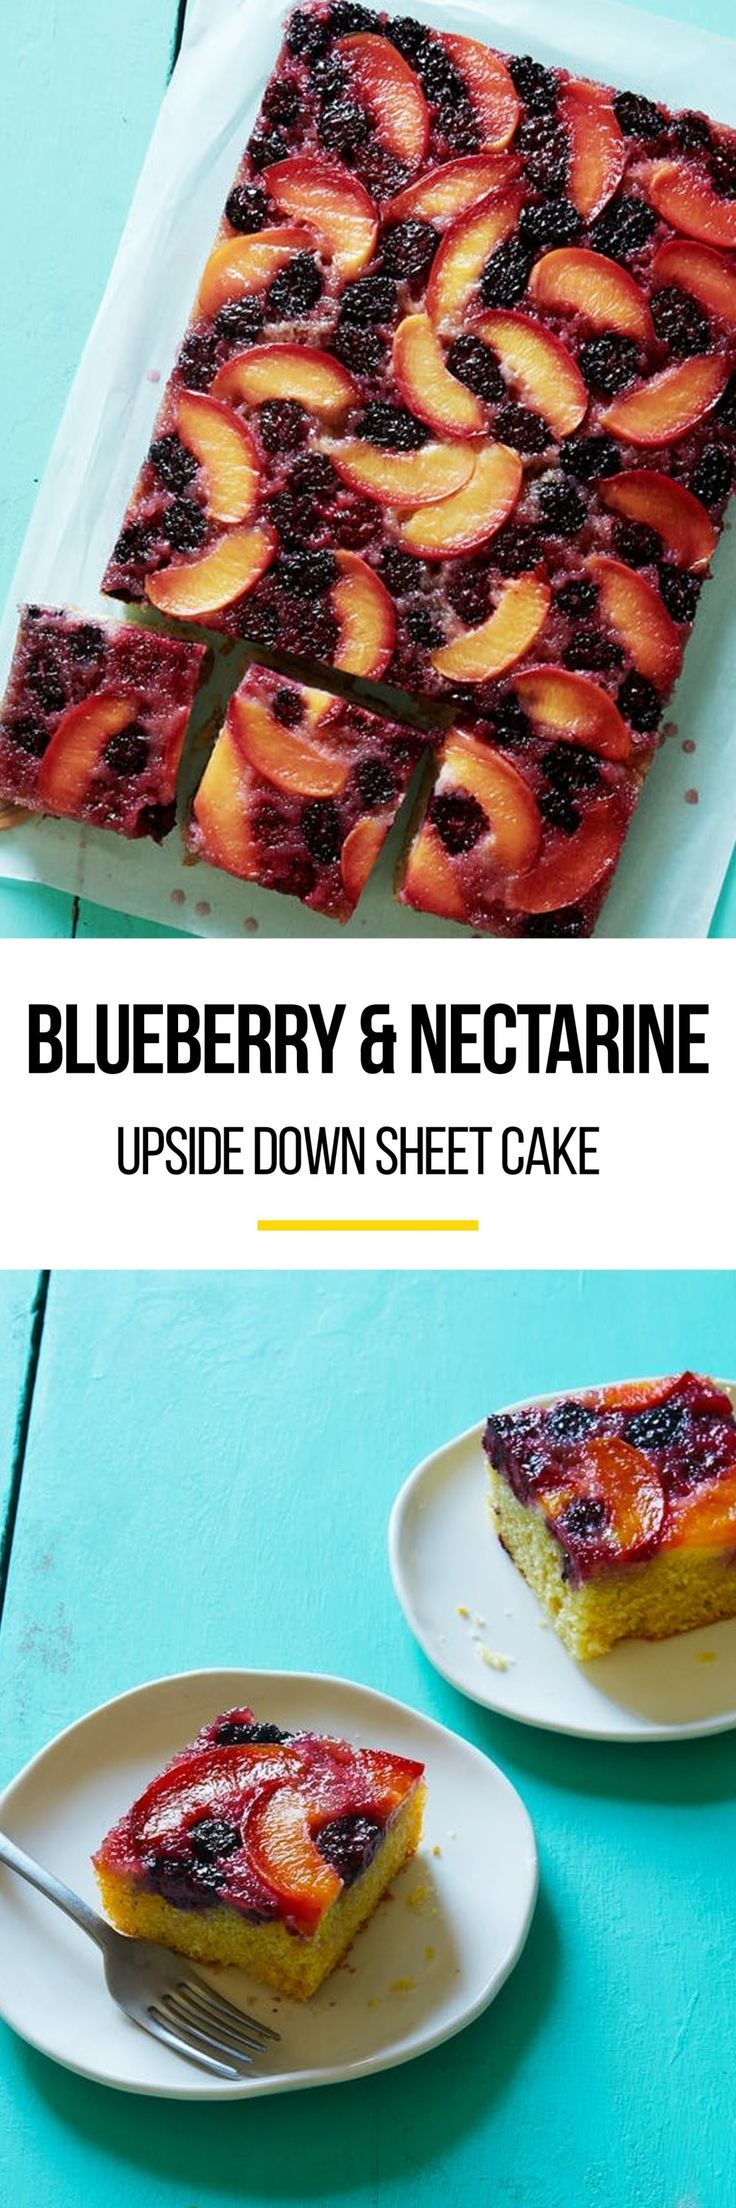 Recipe: Blackberry and Nectarine Upside-Down Sheet Cake | a sparkling combination of inky sweet blackberries and tender nectarines gives a classic yellow cake a jewel-toned finish. If you're due to bring a summery dessert to an office party or barbecue, this upside down cake is for you.